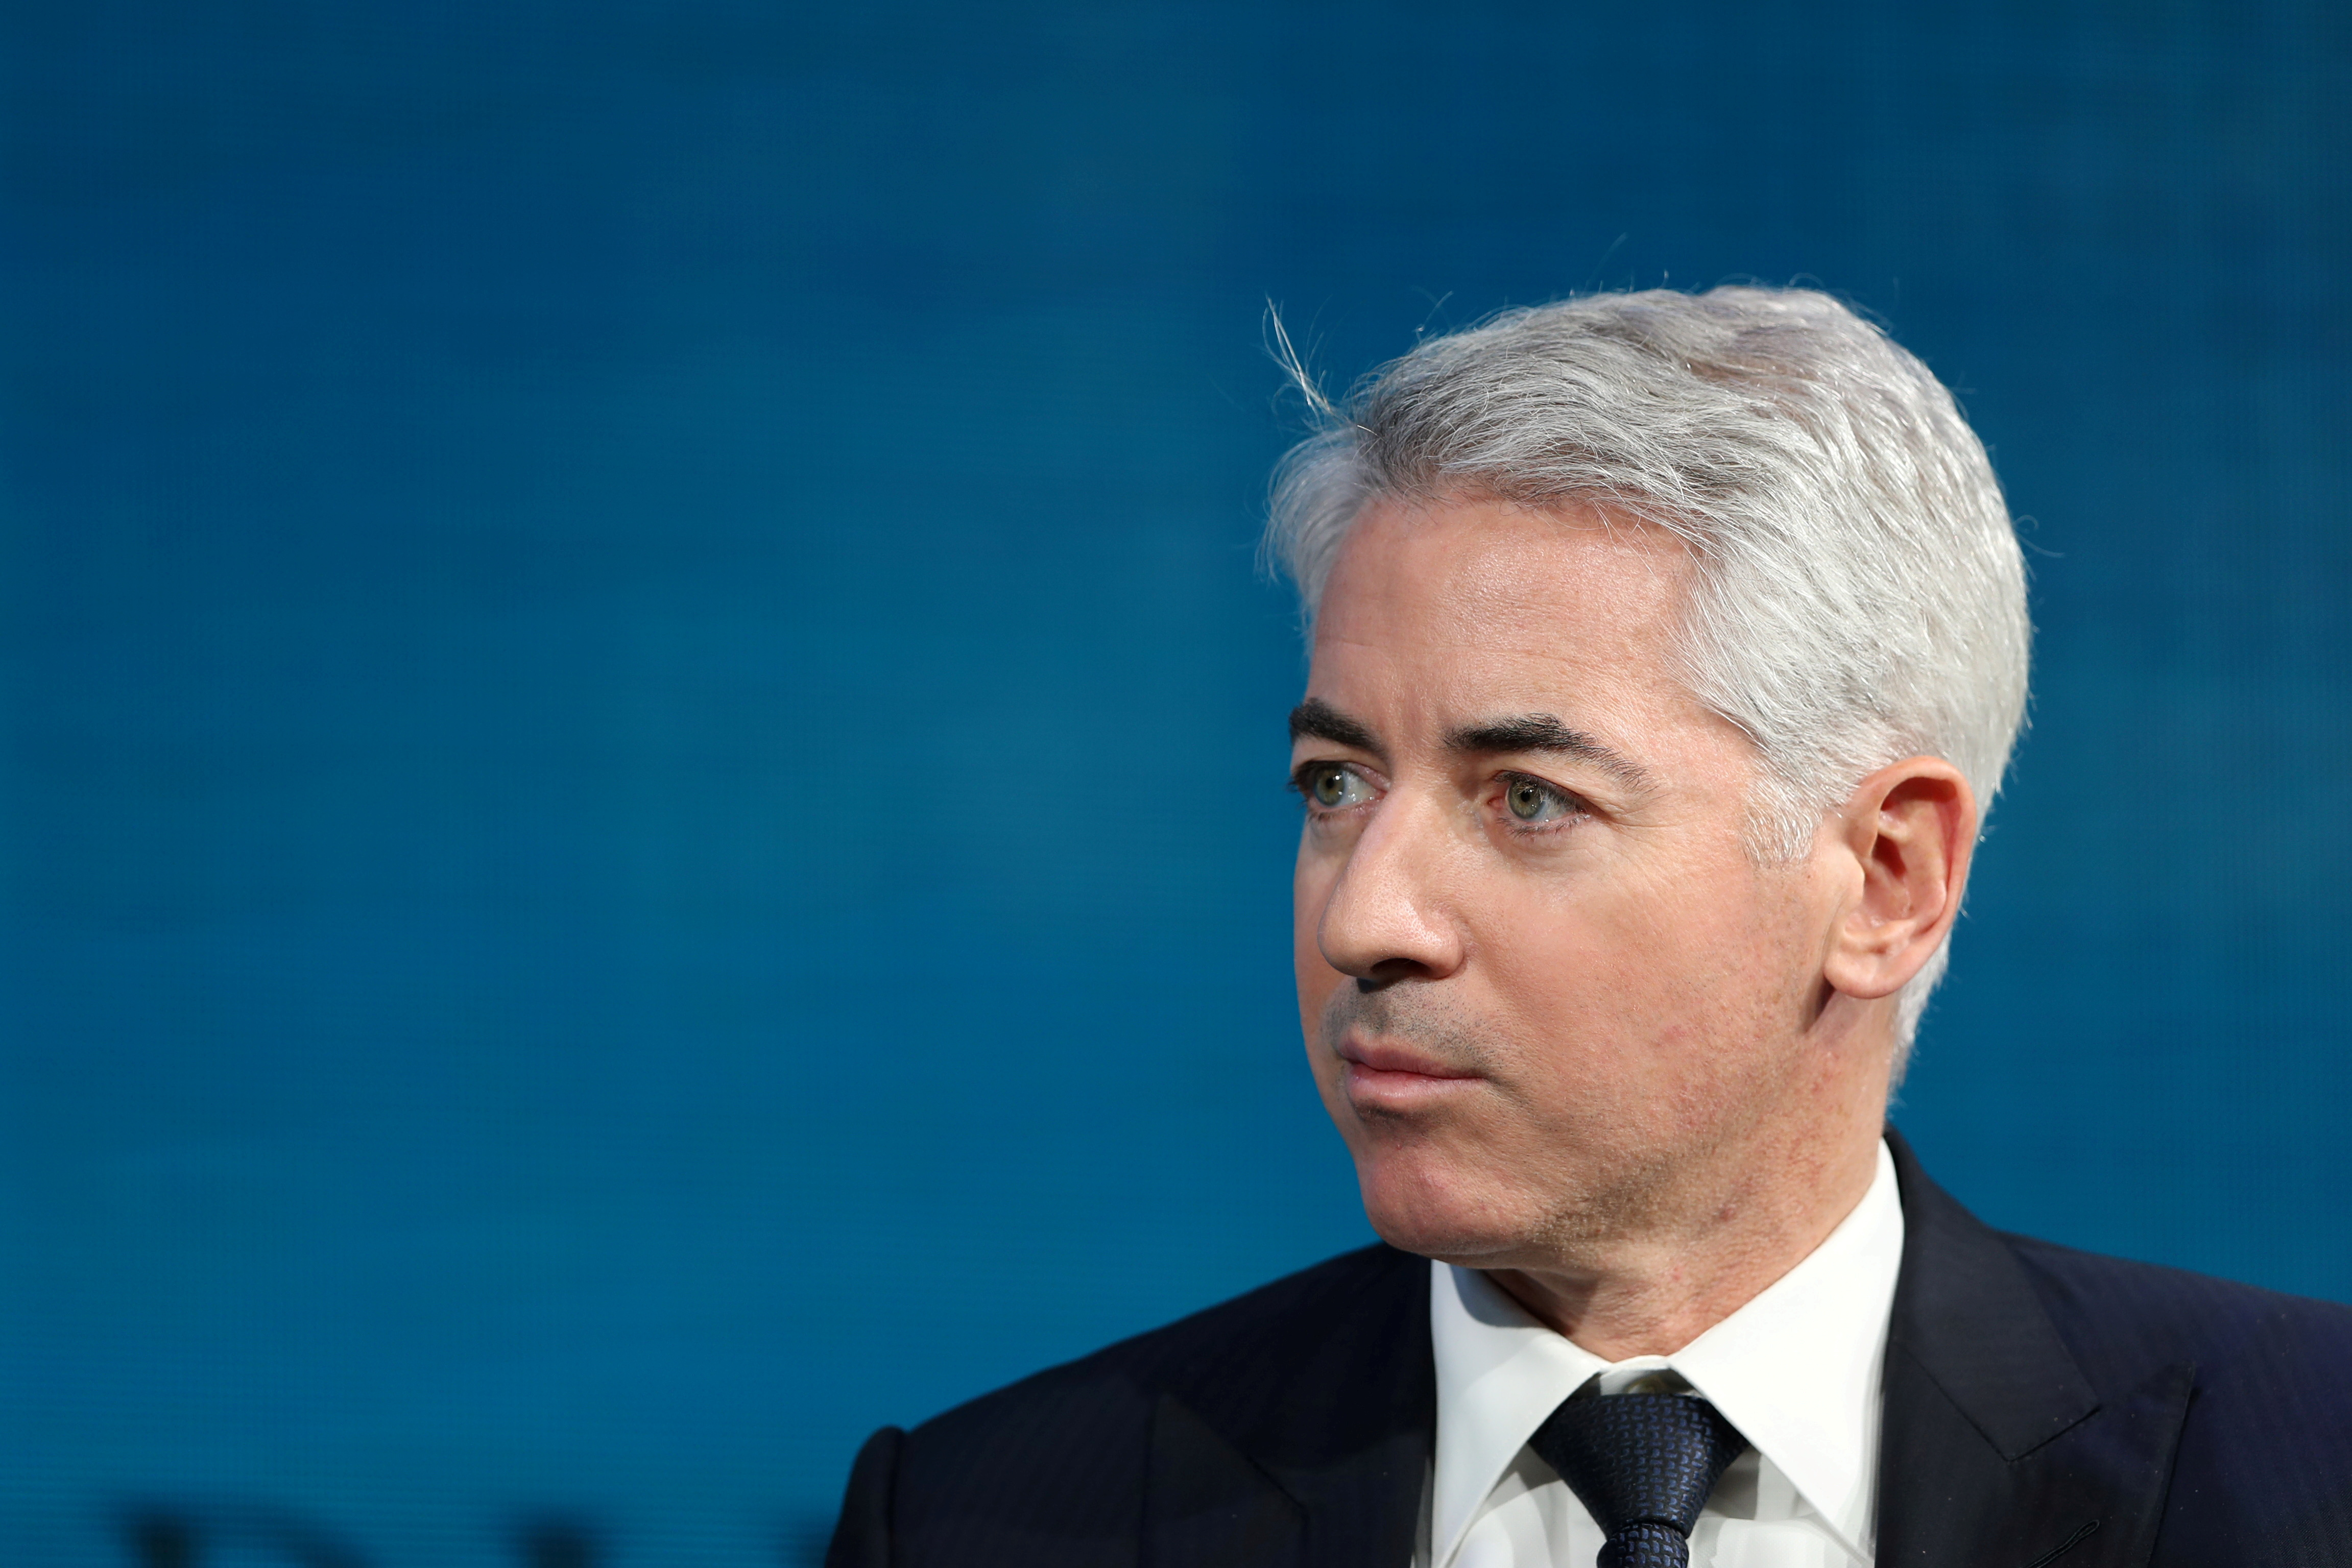 Bill Ackman, CEO of Pershing Square Capital, speaks at the Wall Street Journal Digital Conference in Laguna Beach, California, U.S., October 17, 2017. REUTERS/Mike Blake/File Photo